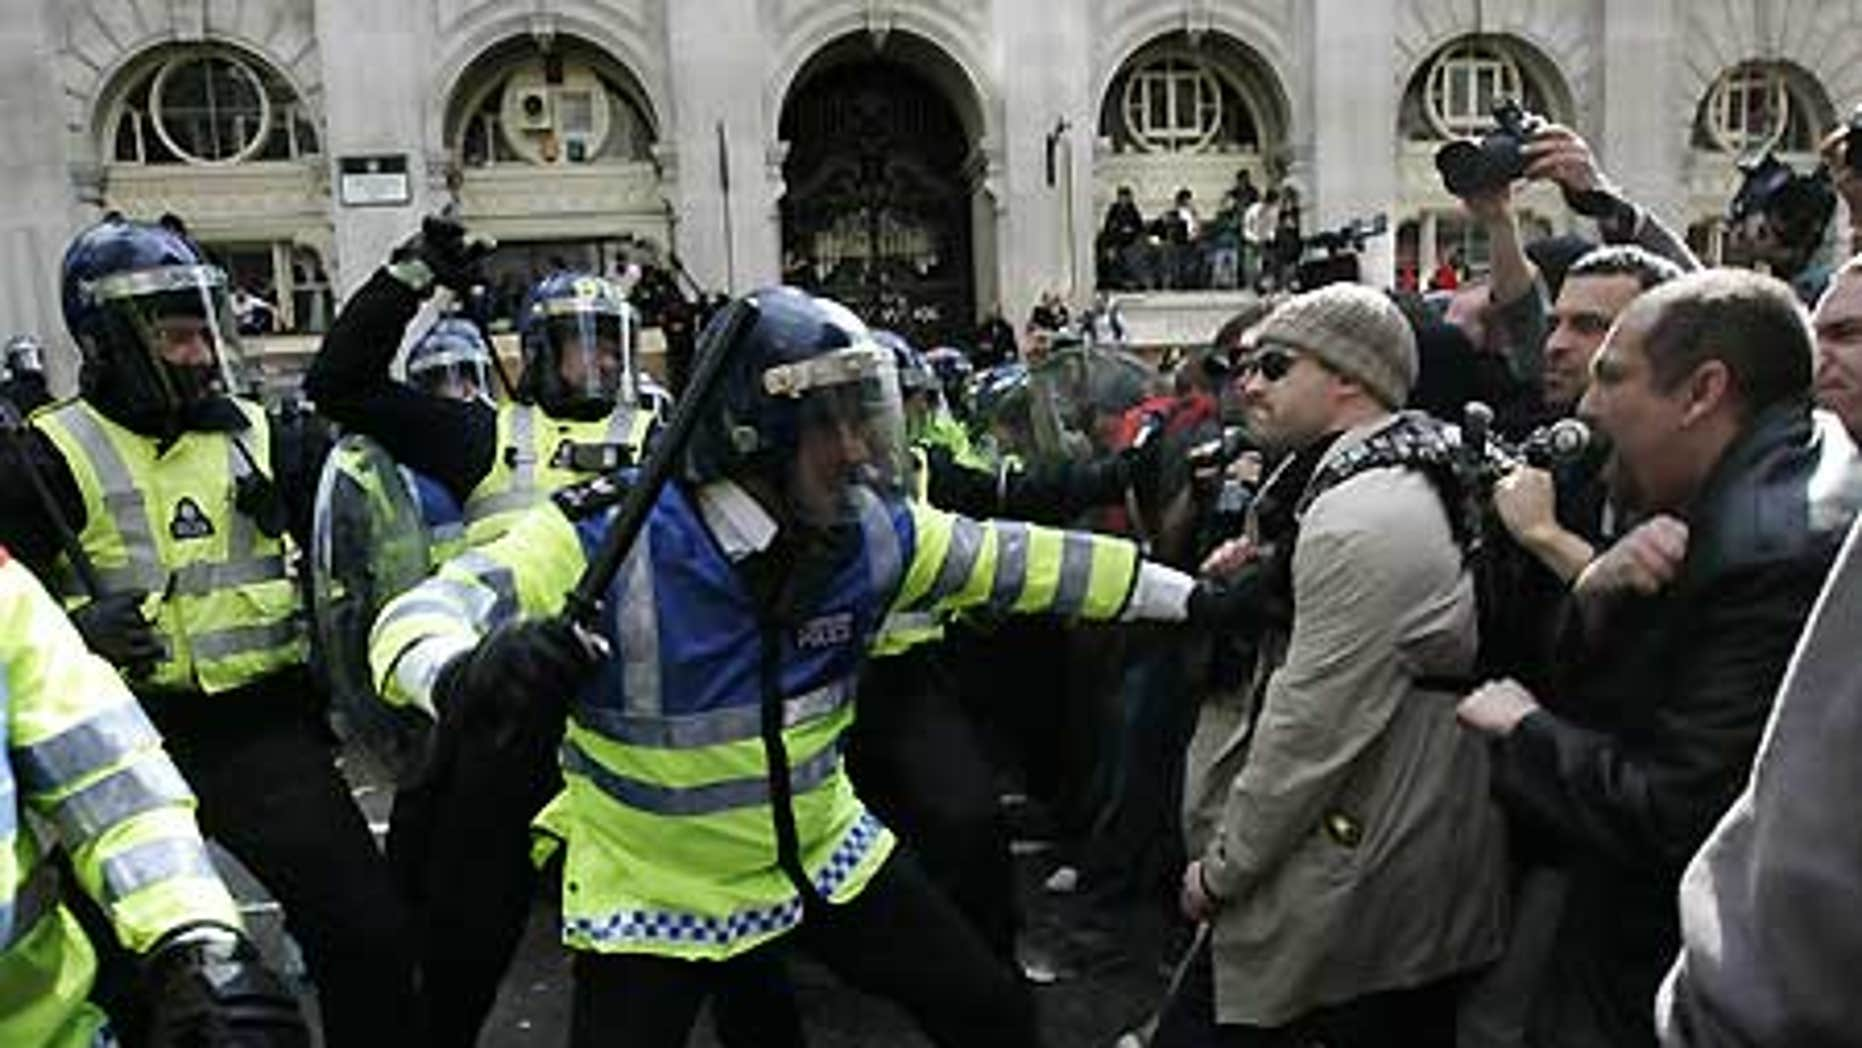 April 1: British police in riot gear, left, and protesters are seen during clashes in central London's financial district.